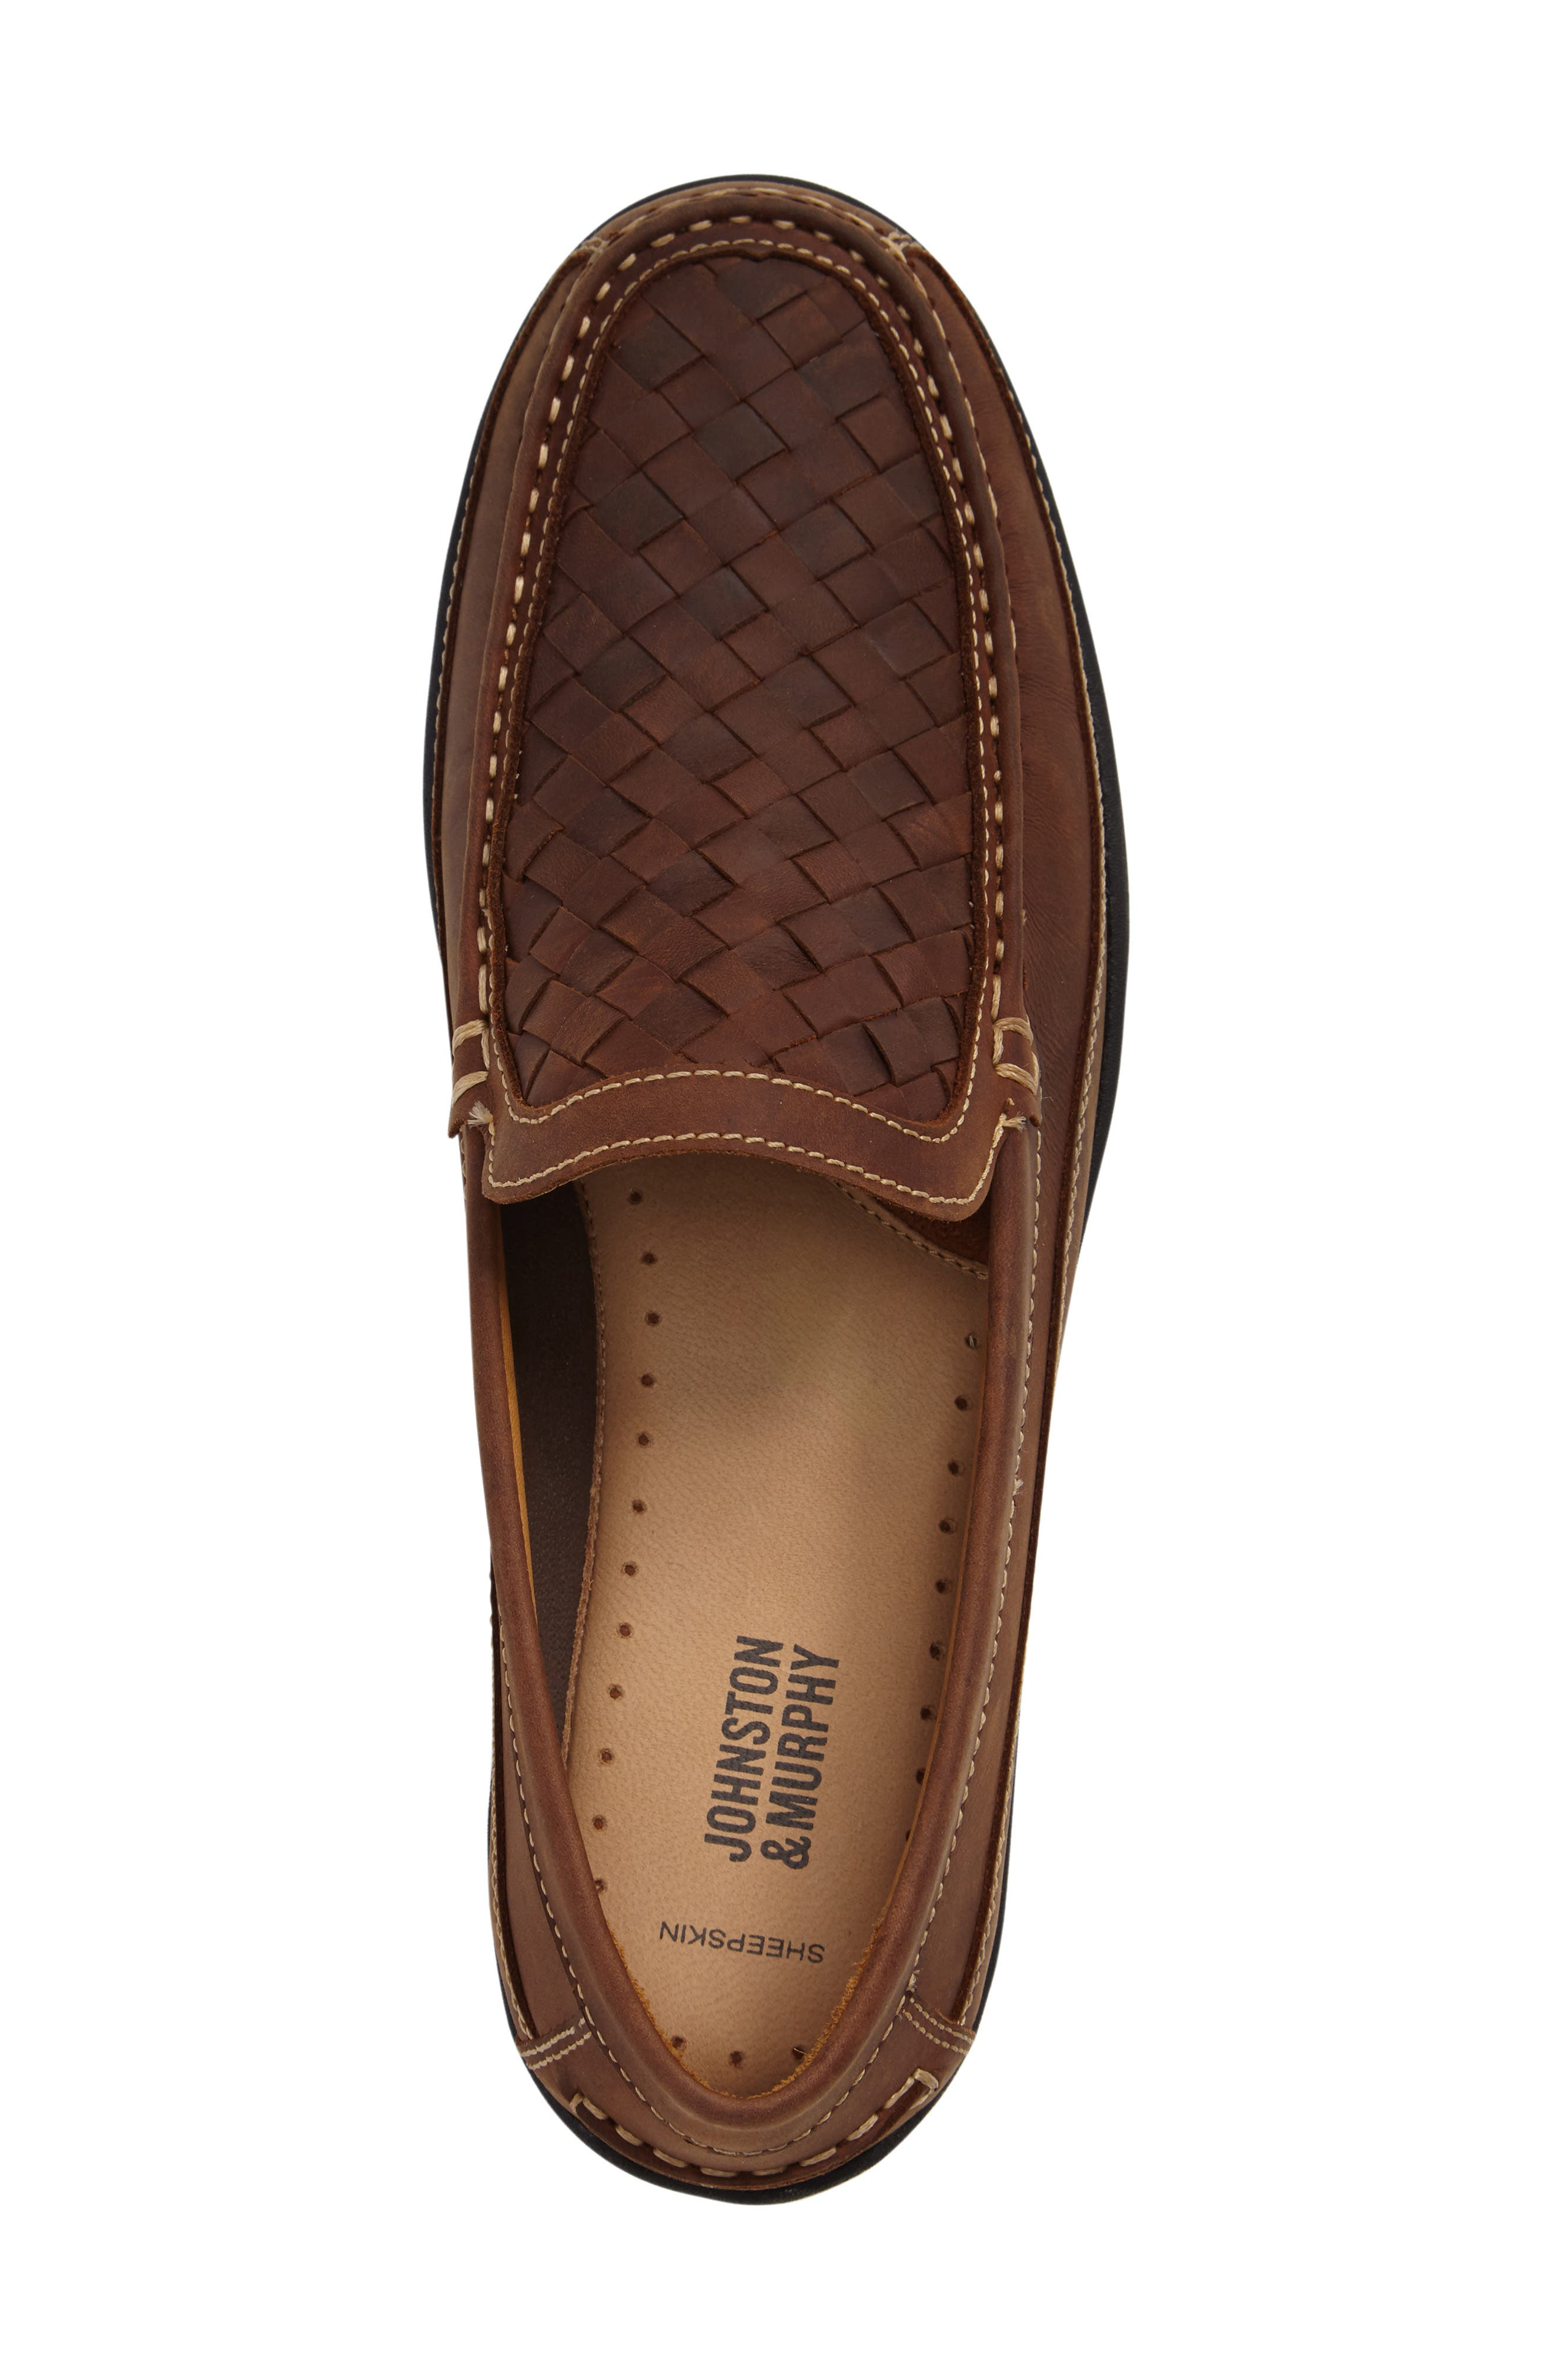 JOHNSTON & MURPHY,                             Fowler Woven Loafer,                             Alternate thumbnail 3, color,                             TAN LEATHER